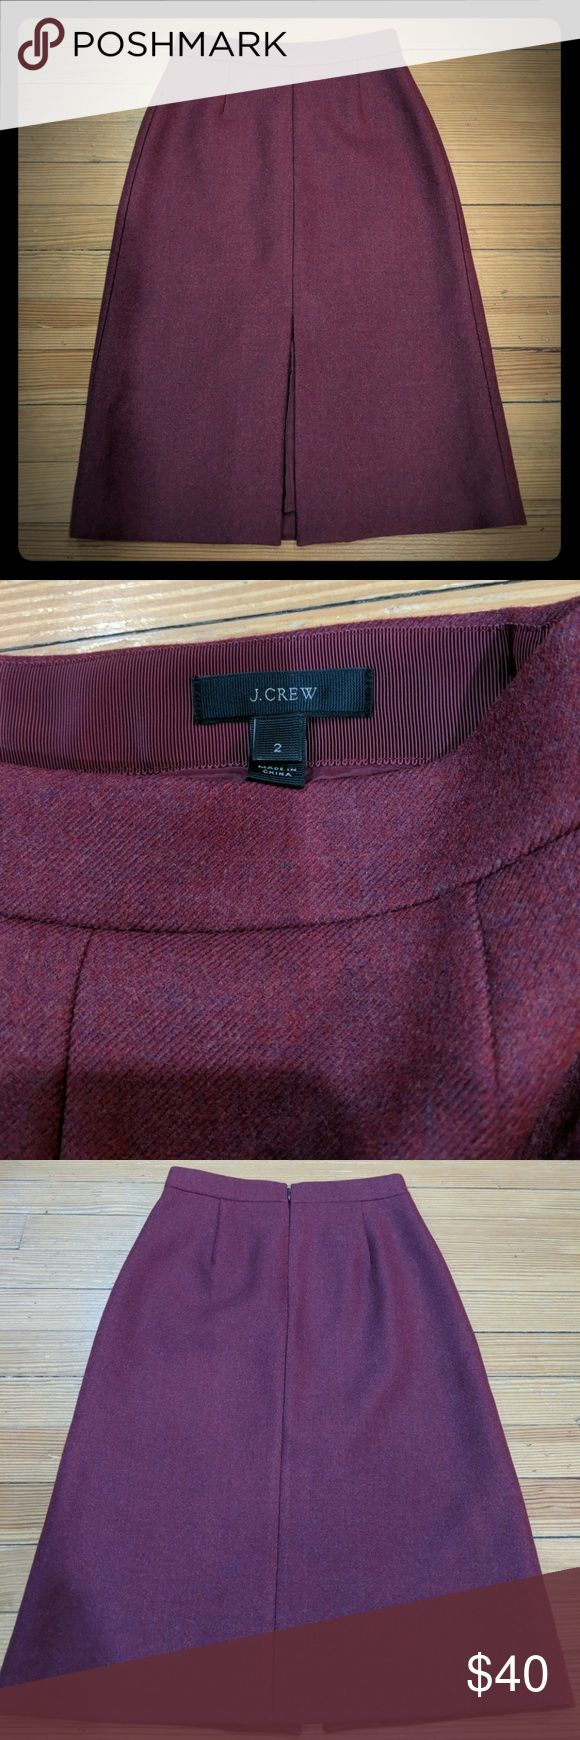 J. Crew A line midi skirt in double serge wool Cranberry color size 2  This A-line below-the-knee skirt in our sleek and substantial double-serge wool has all the makings of your new favorite layer for fall. A higher waist and a slim cut through the hips give it a super-polished look, while a flirty front slit keeps things playful.  Wool.  Back zip.  Lined.  Dry clean.  Import.  Online only.  Item C8790. J. Crew Skirts